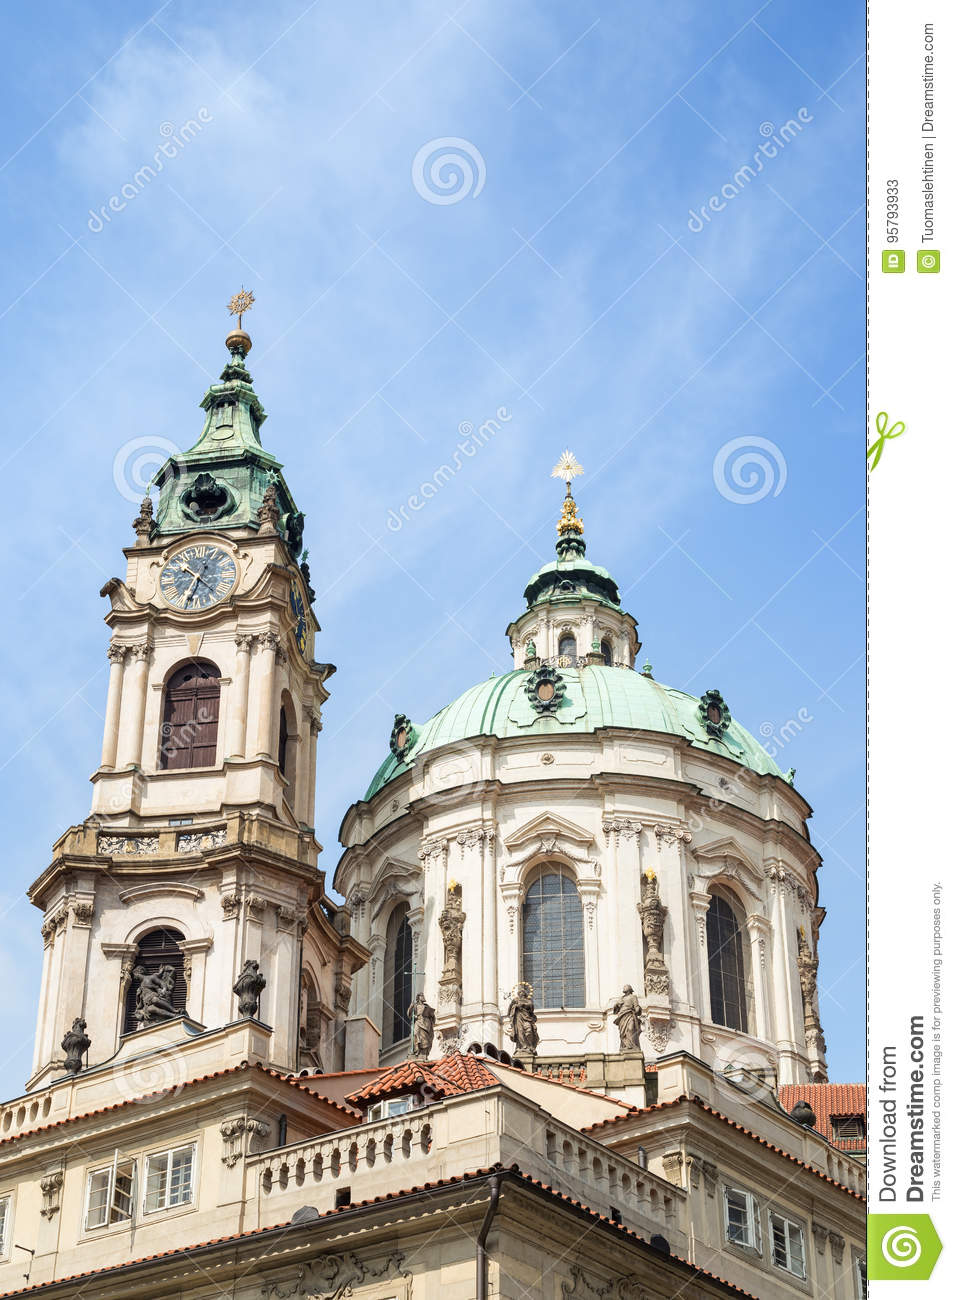 Tower and dome of St. Nicholas Church in Prague